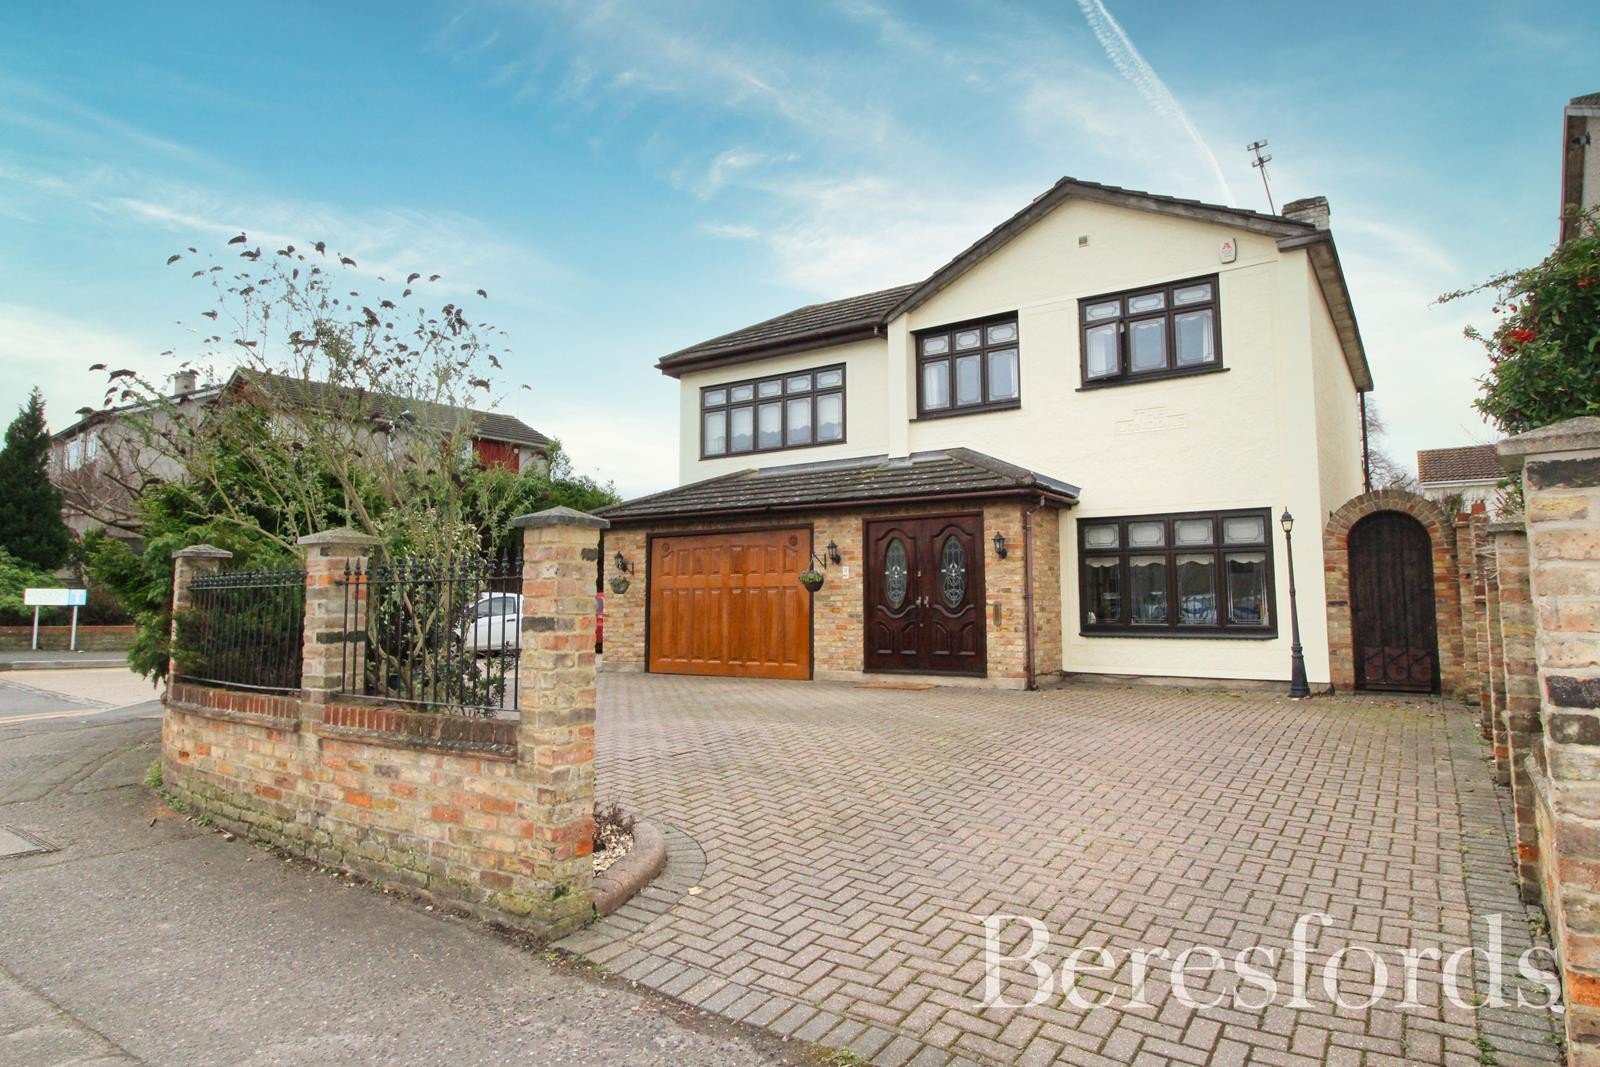 Londons Close, Upminster, Essex, RM14